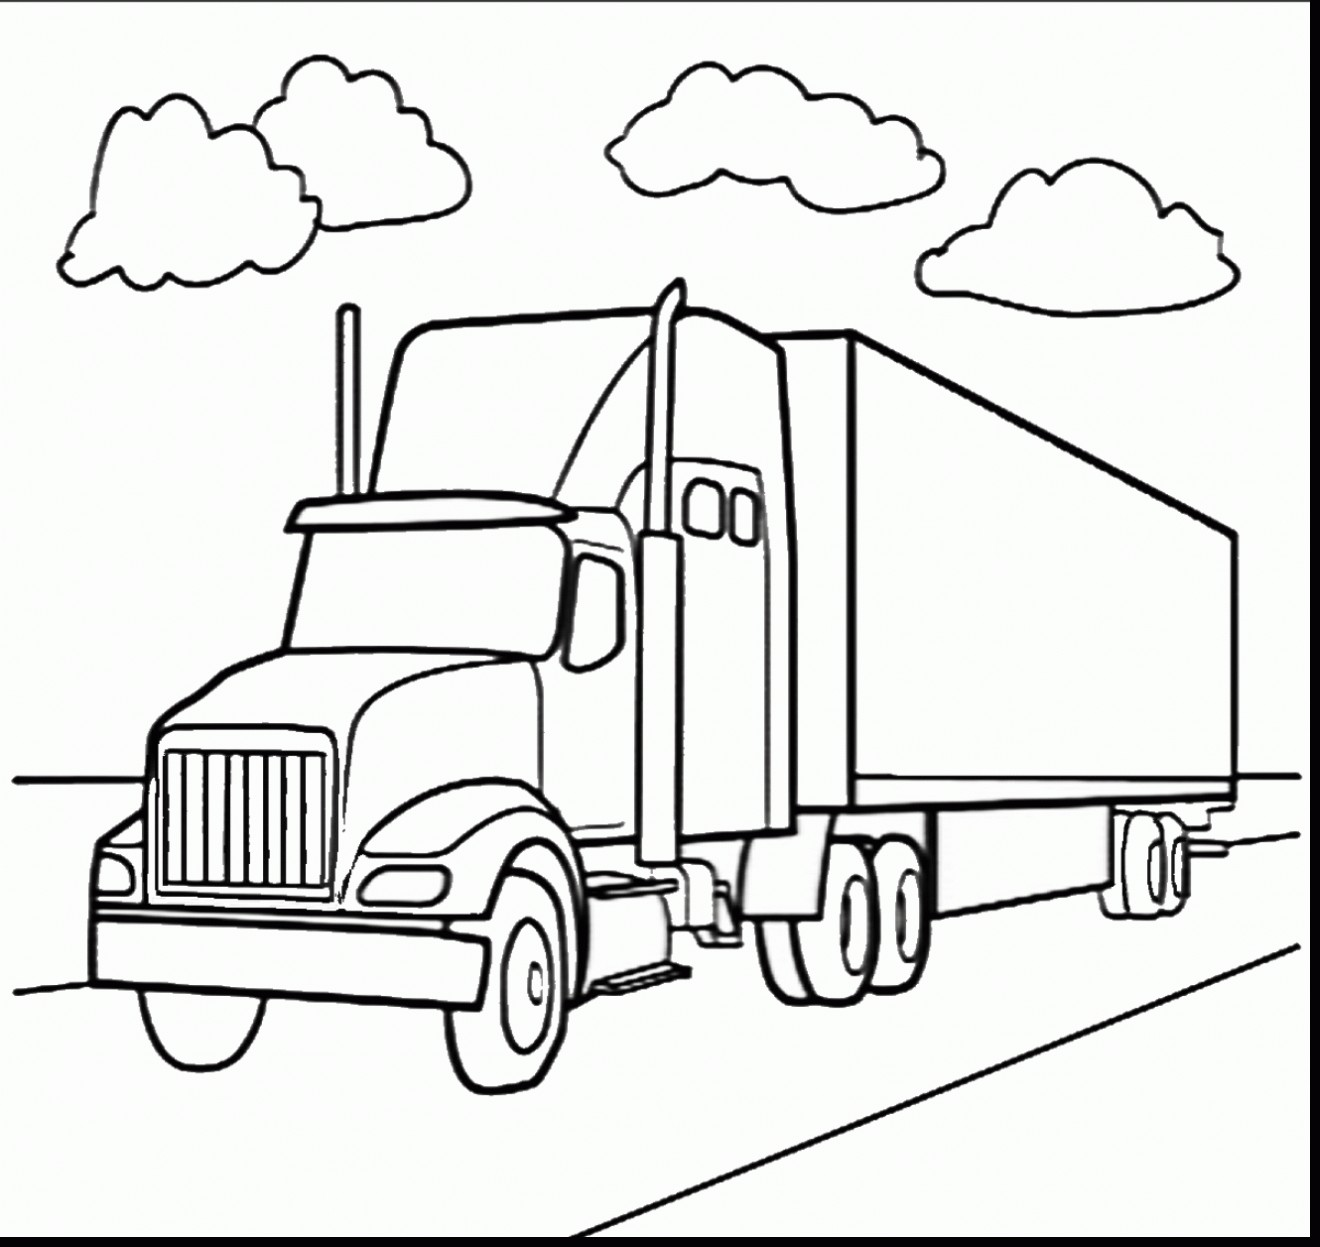 The Best Free Trailer Drawing Images Download From 366